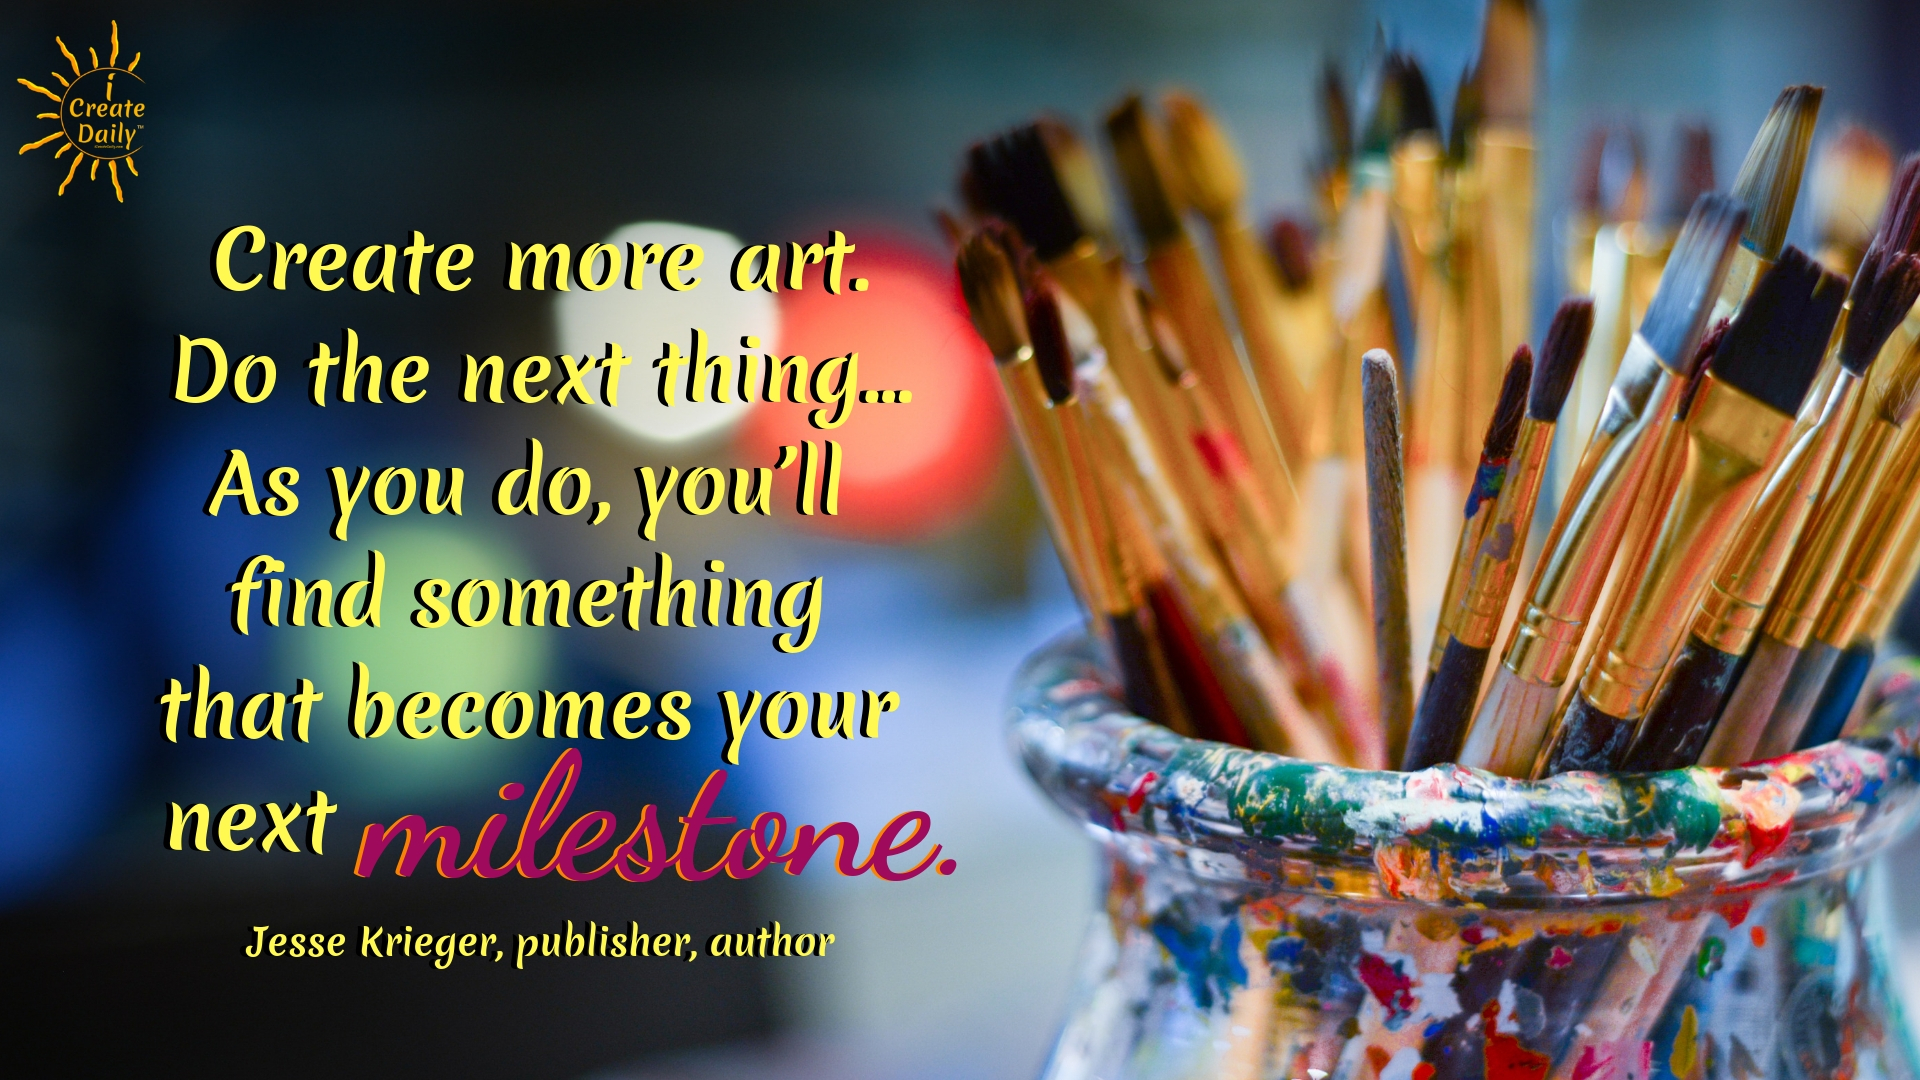 """Create more art. Do the next thing... As you do, you'll find something that becomes your next milestone."" ~Jesse Krieger, publisher, author, and entrepreneur #lifegoals #Dreams #Motivation #BucketLists #Ideas #Quotes #Money #IWant #Happy #ThingsToDo #Inspiration #Thoughts #Travel #Adventure #Fun #Friends #Awesome #People #Families #Heavens #RoadTrips #Wanderlust #Mottos #icreatedaily"